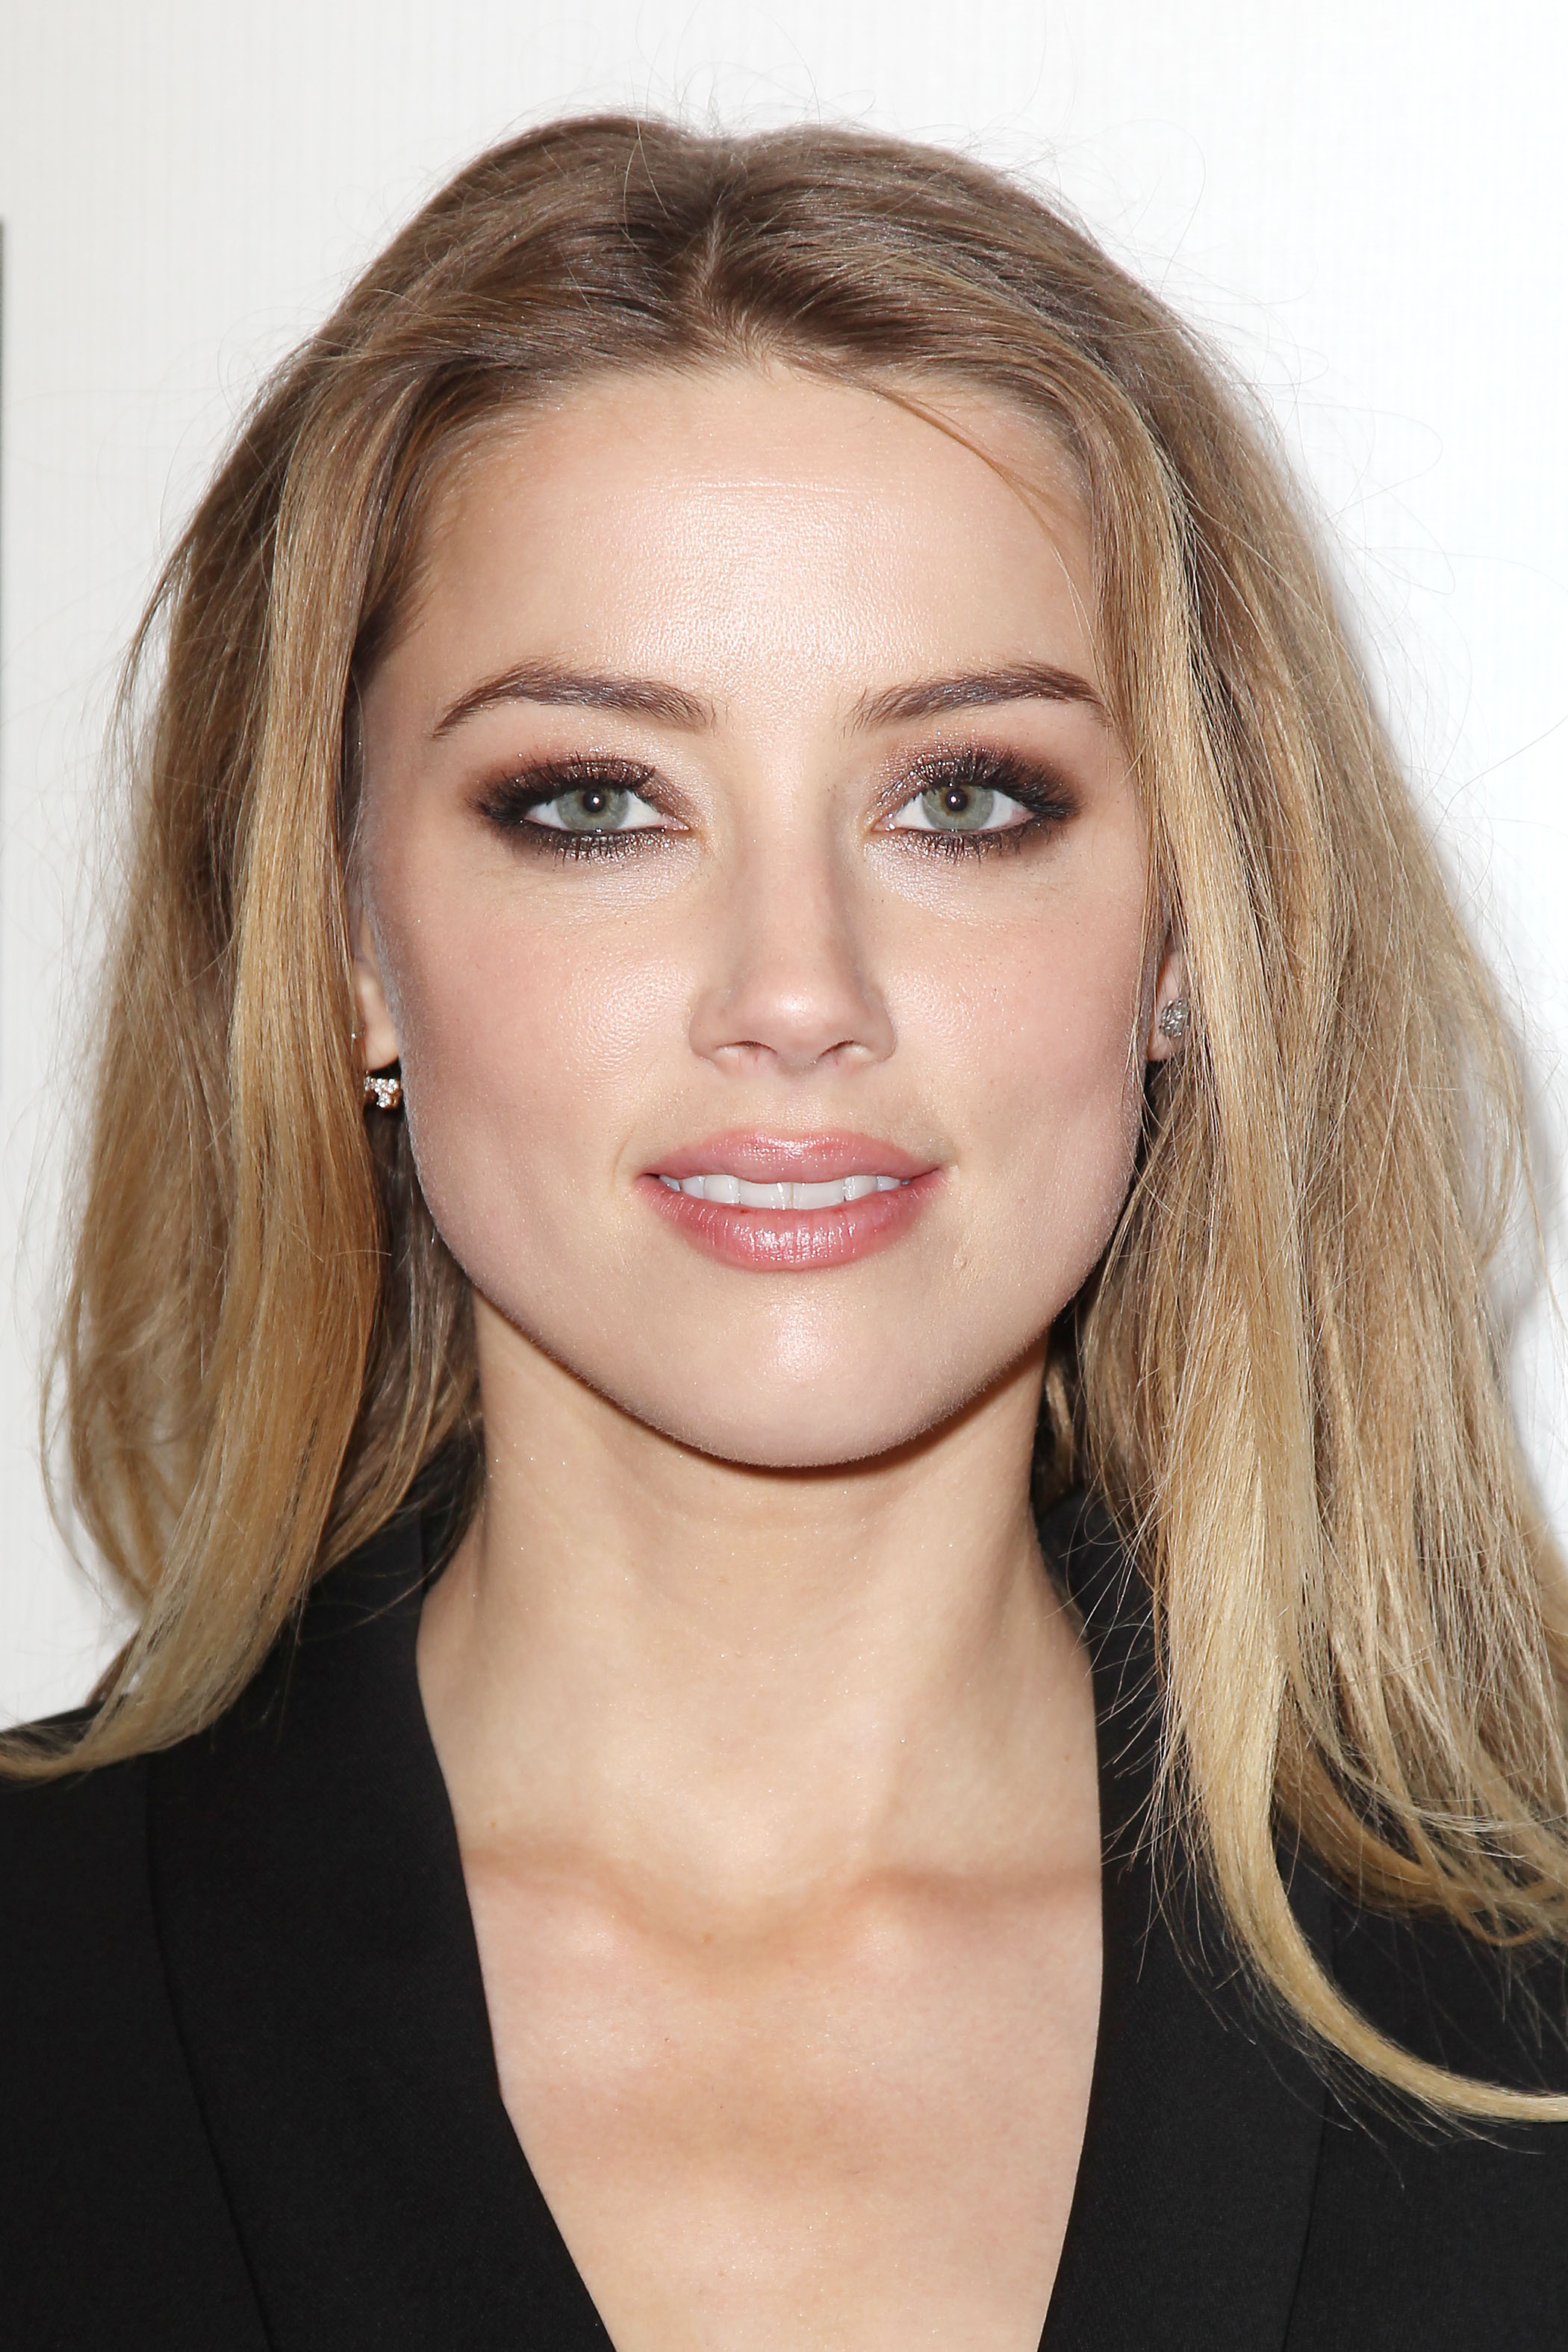 amber-heard_2015-04-16_world-premiere-of-the-adderall-diaries-at-tff_97